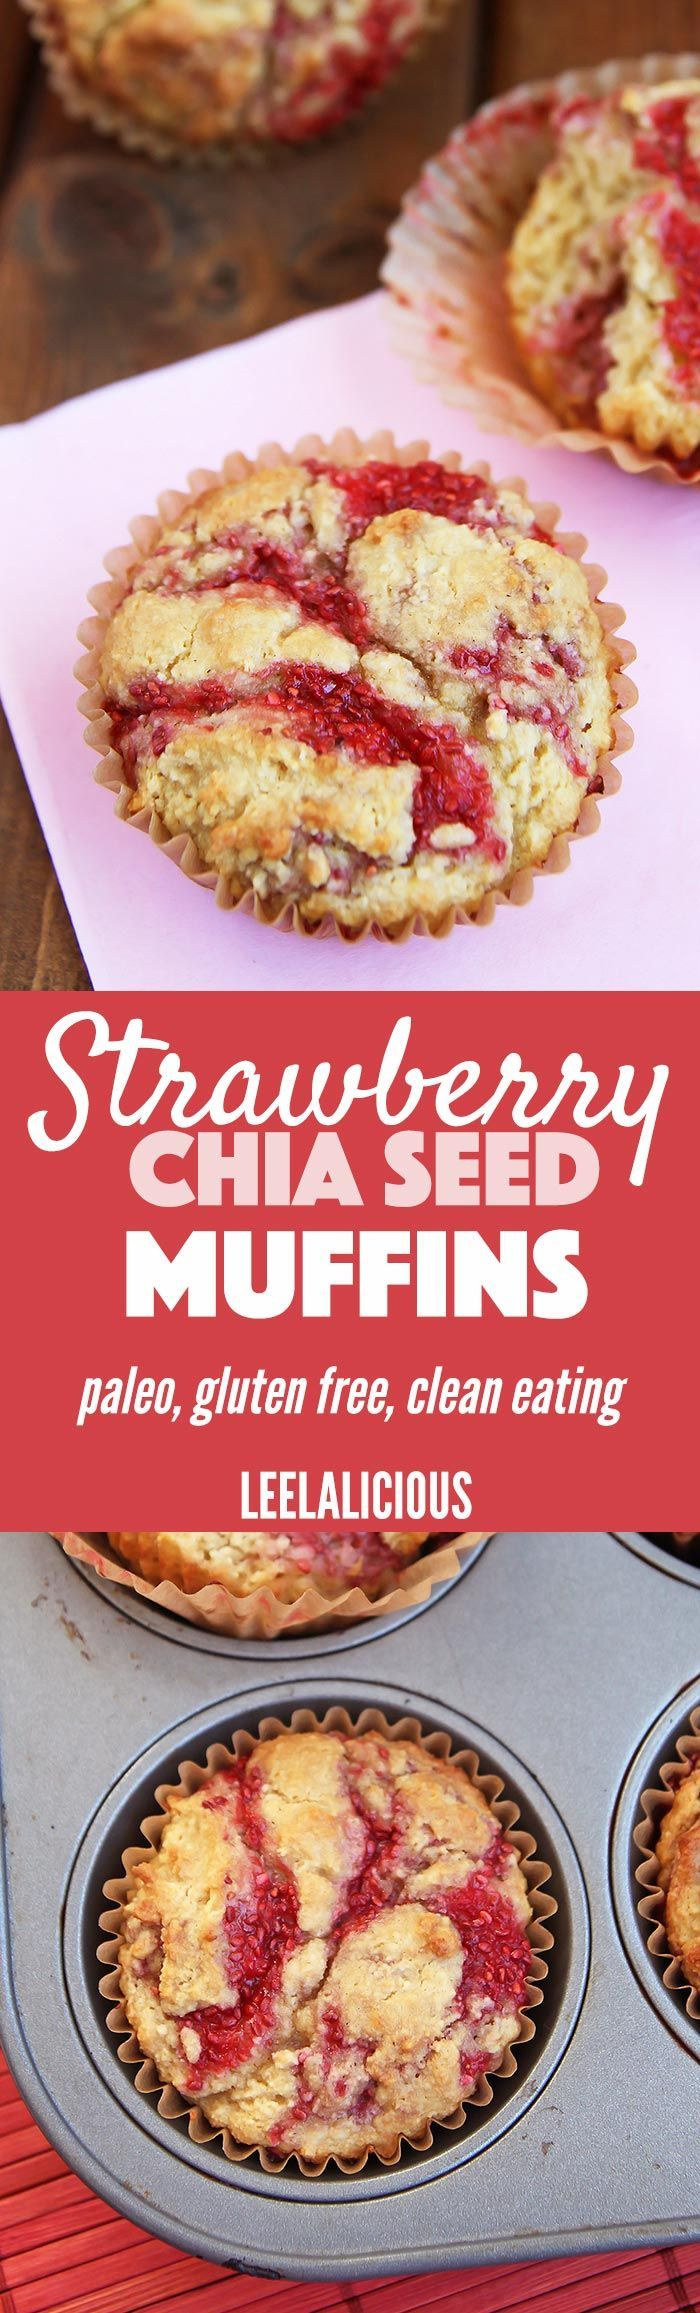 My Coconut Flour Muffin Recipe combined with Strawberry Chia Jam produces these wonderfully bright and flavorful Strawberry Chia Seed Muffins.